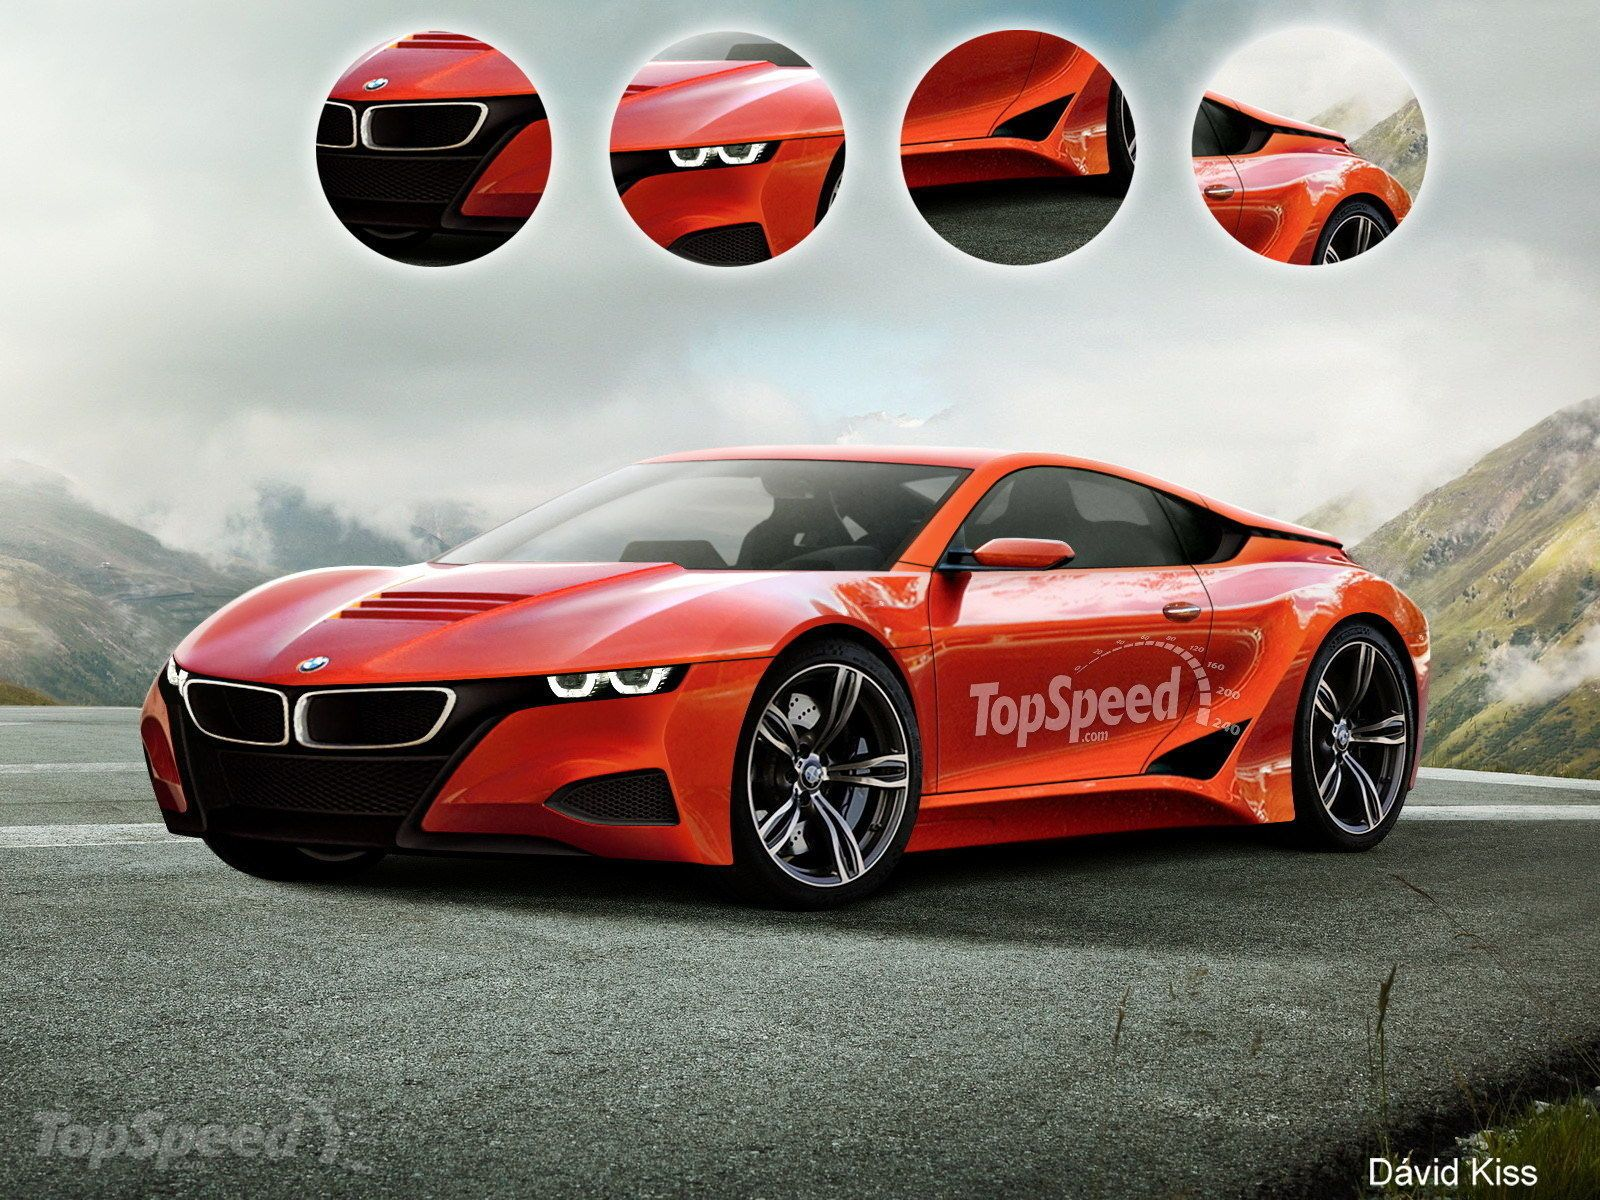 Rumor Bmw M8 Supercar With 630 Hp Coming In 2018 Bmw Super Cars Bmw Supercar